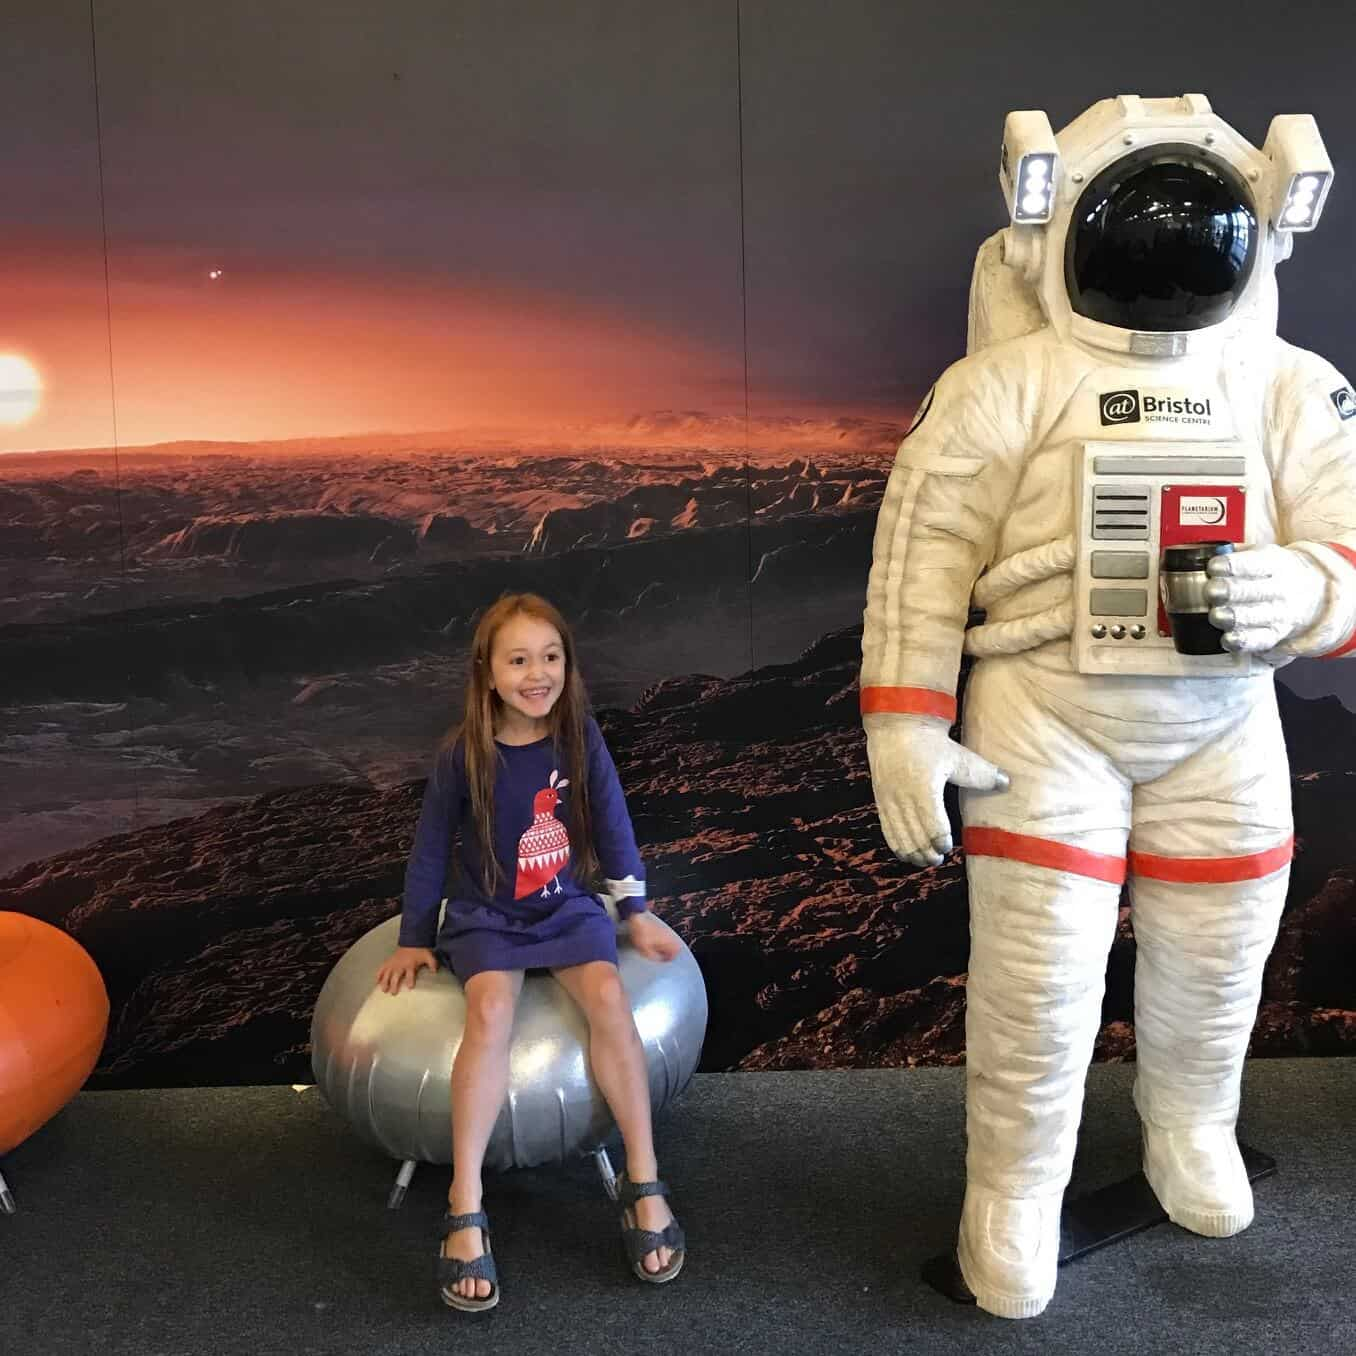 Ava and a spaceman at @Bristol